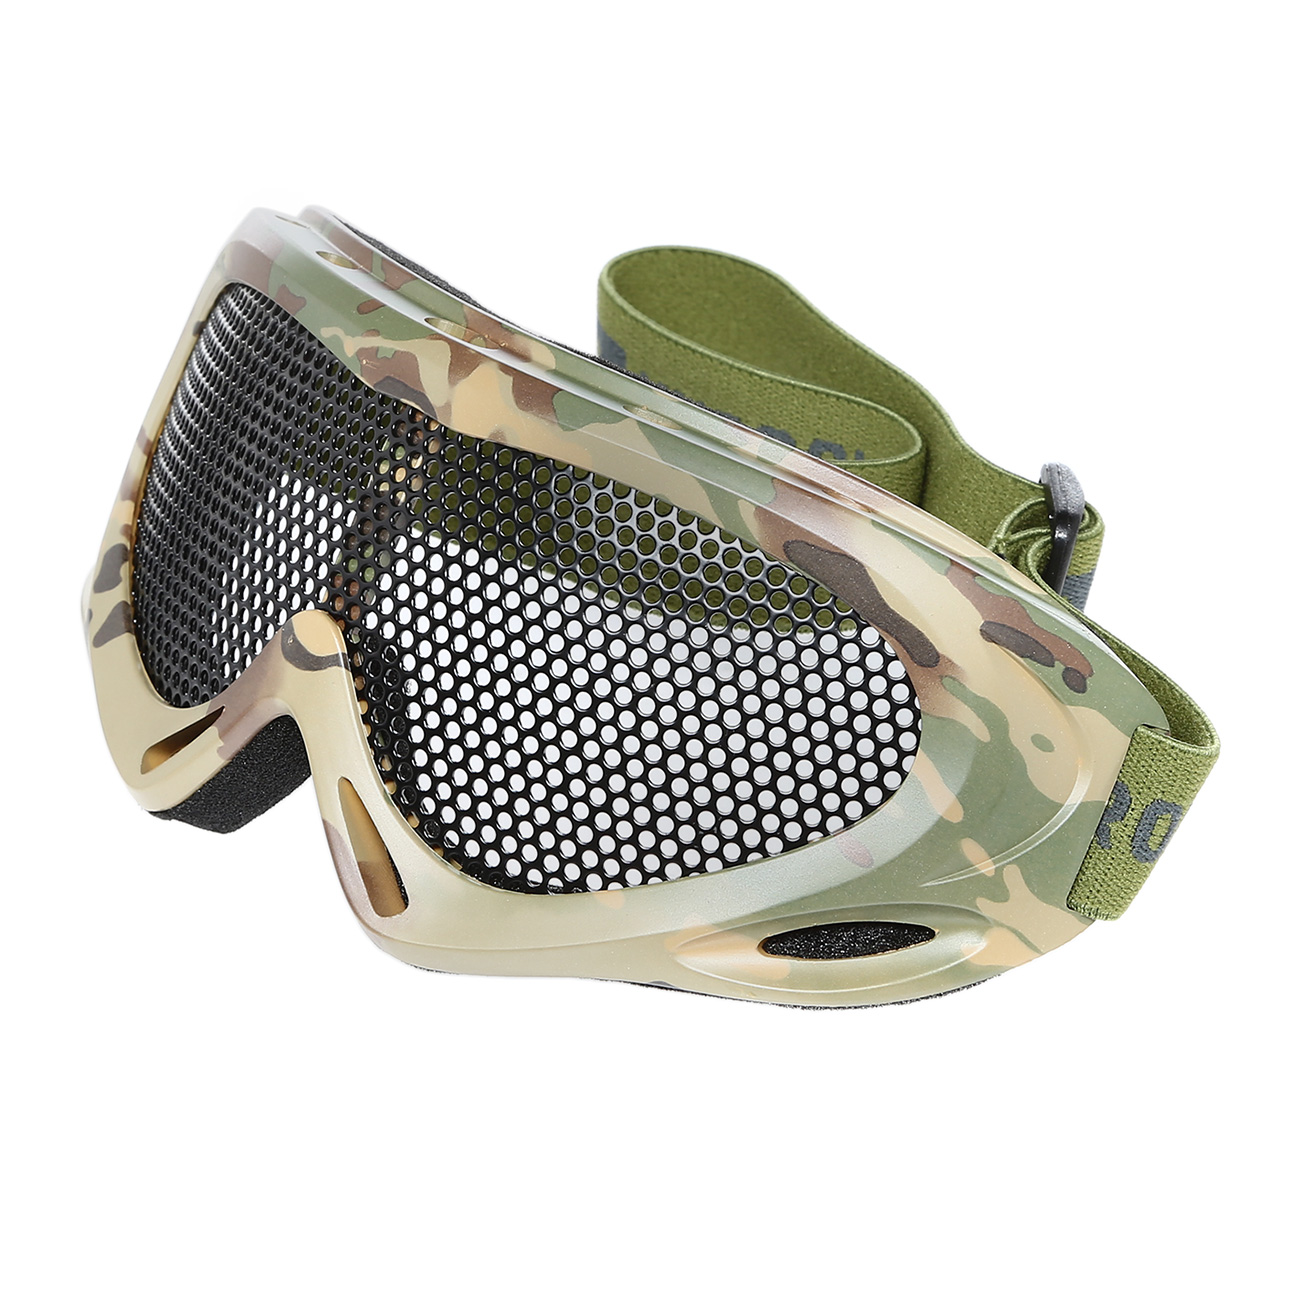 Nuprol Brille Pro Mesh Eye Protection Airsoft Gitterbrille camo 0